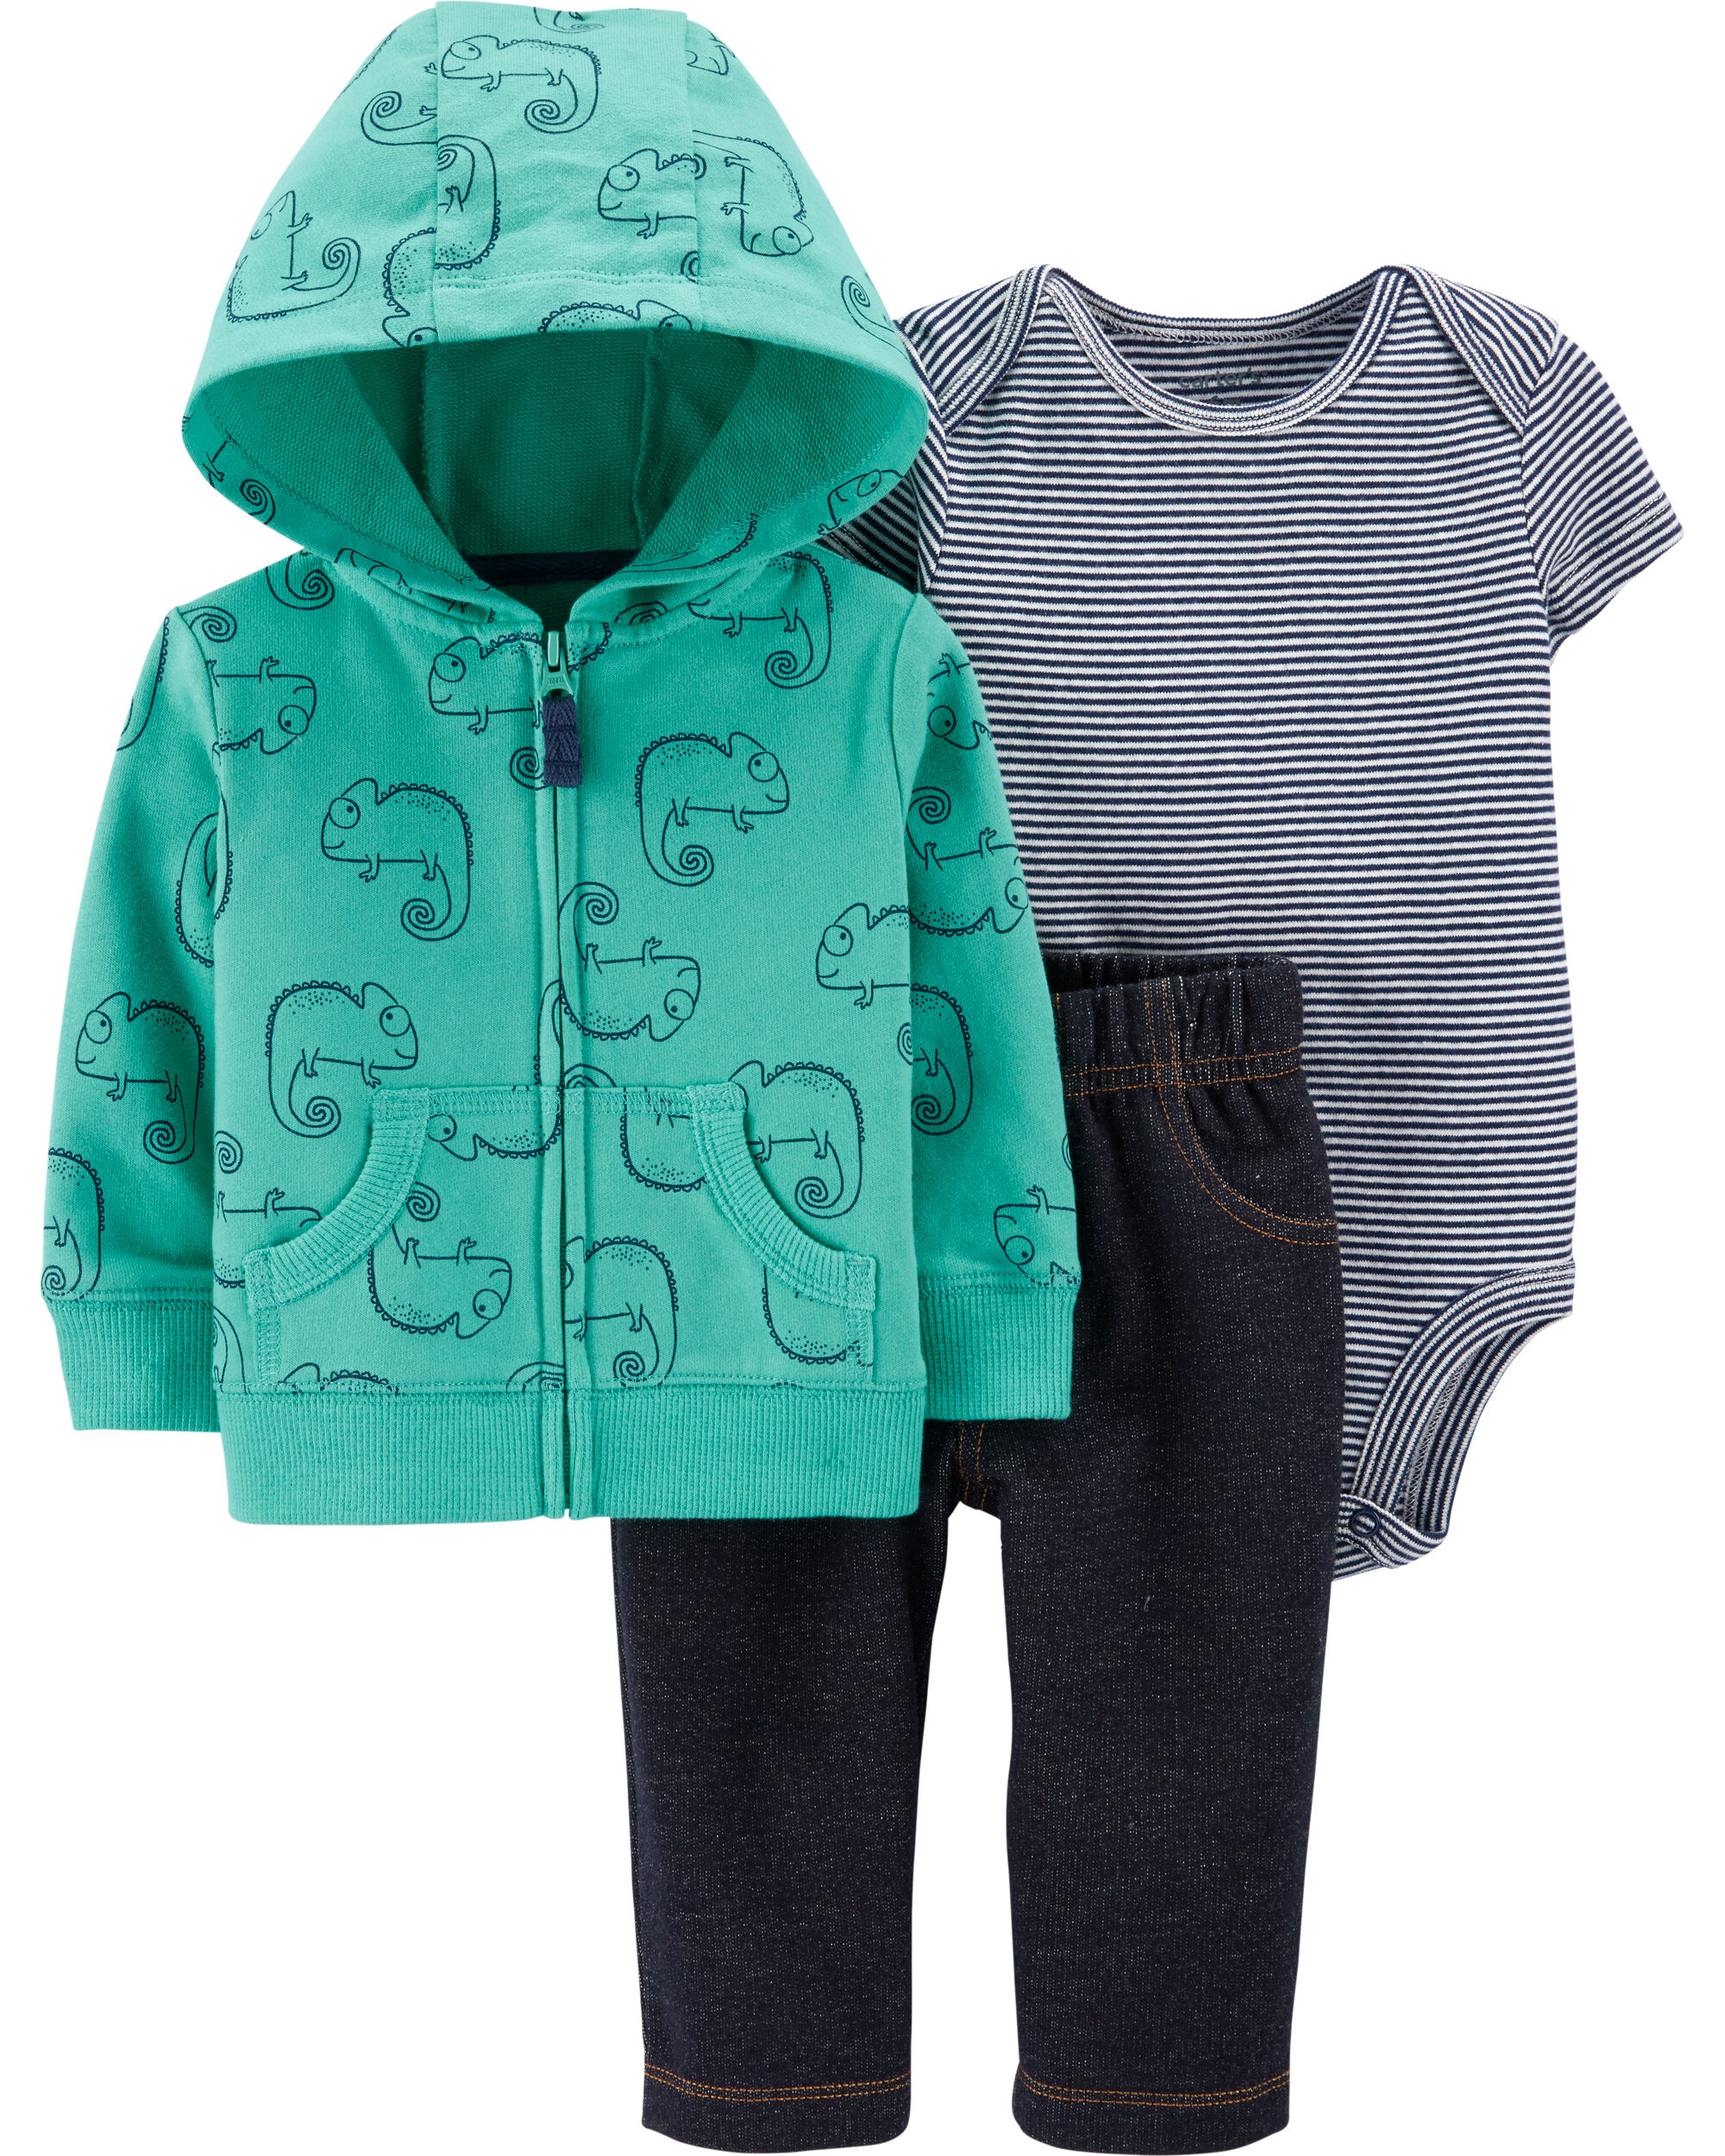 *DOORBUSTER* 3-Piece Chameleon Little Jacket Set